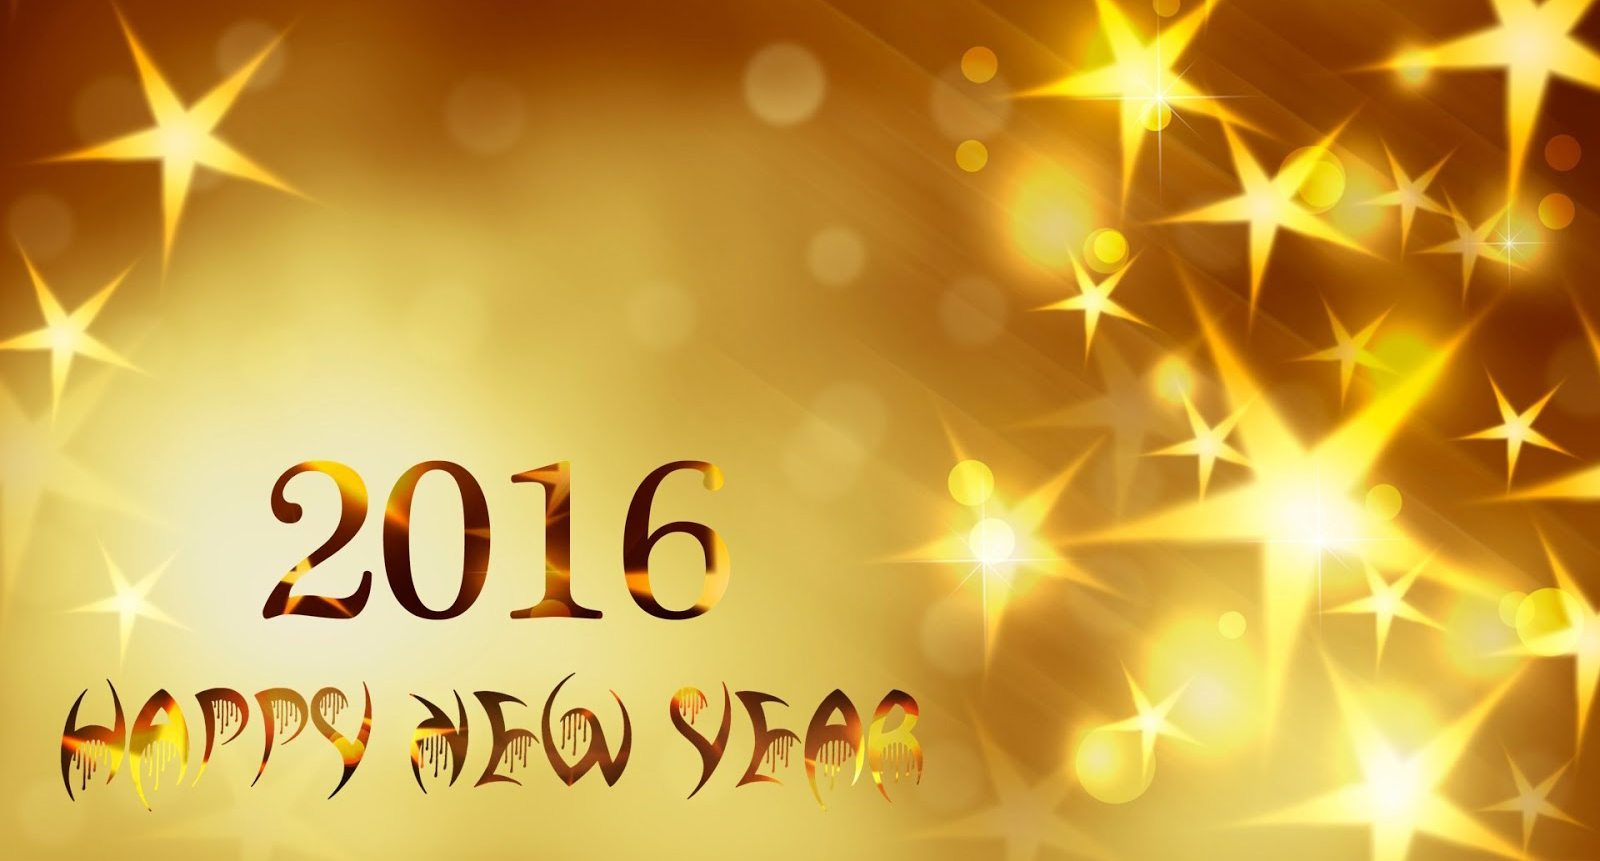 Happy-New-Year-2016-Free-Download-Wallpapers-And-SMS-21